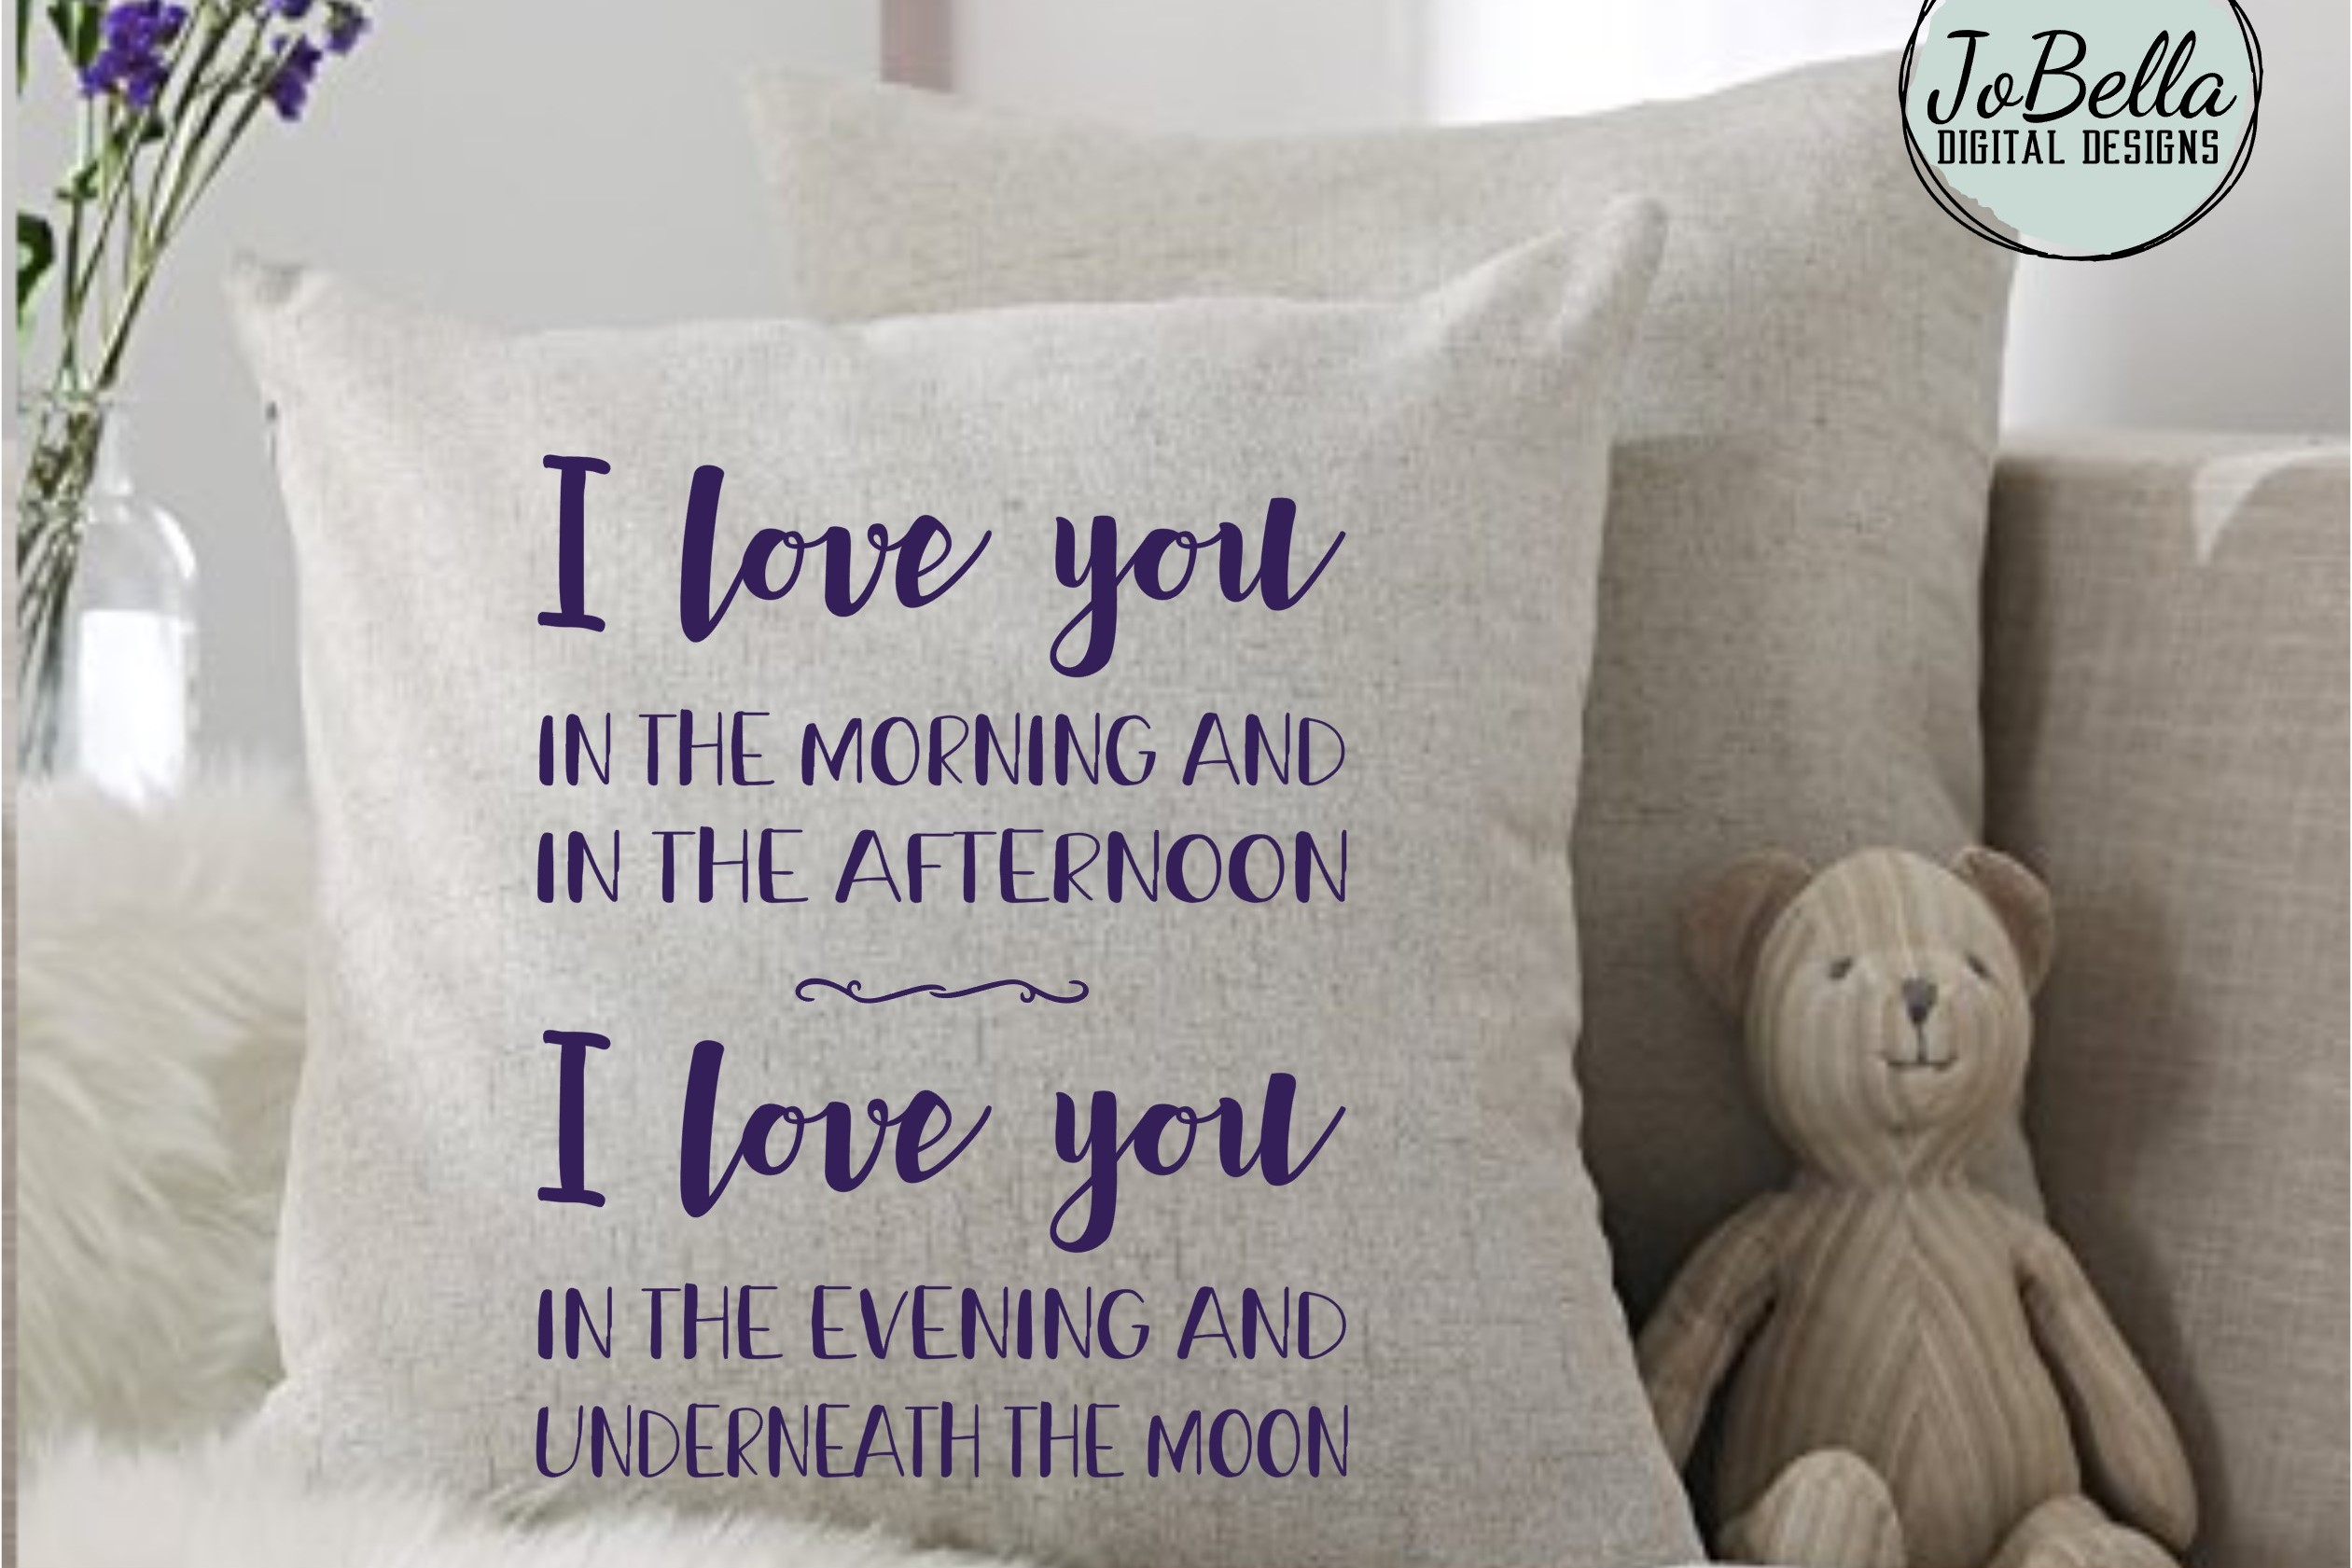 Kids Room SVG & Printable - I Love You In The Morning And... example image 2